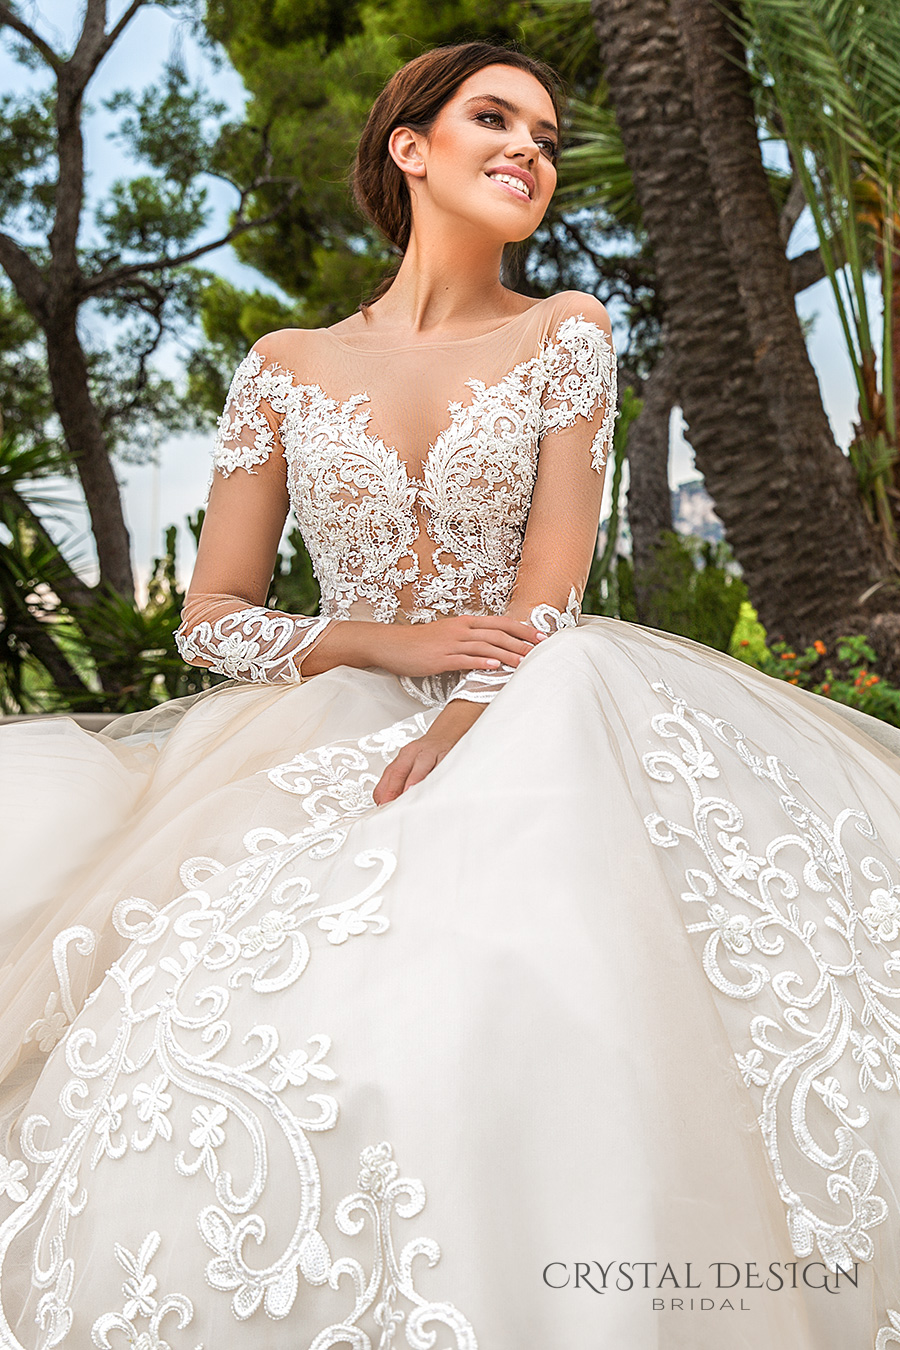 Wedding Gowns With Designs : Crystal design wedding dresses haute couture bridal